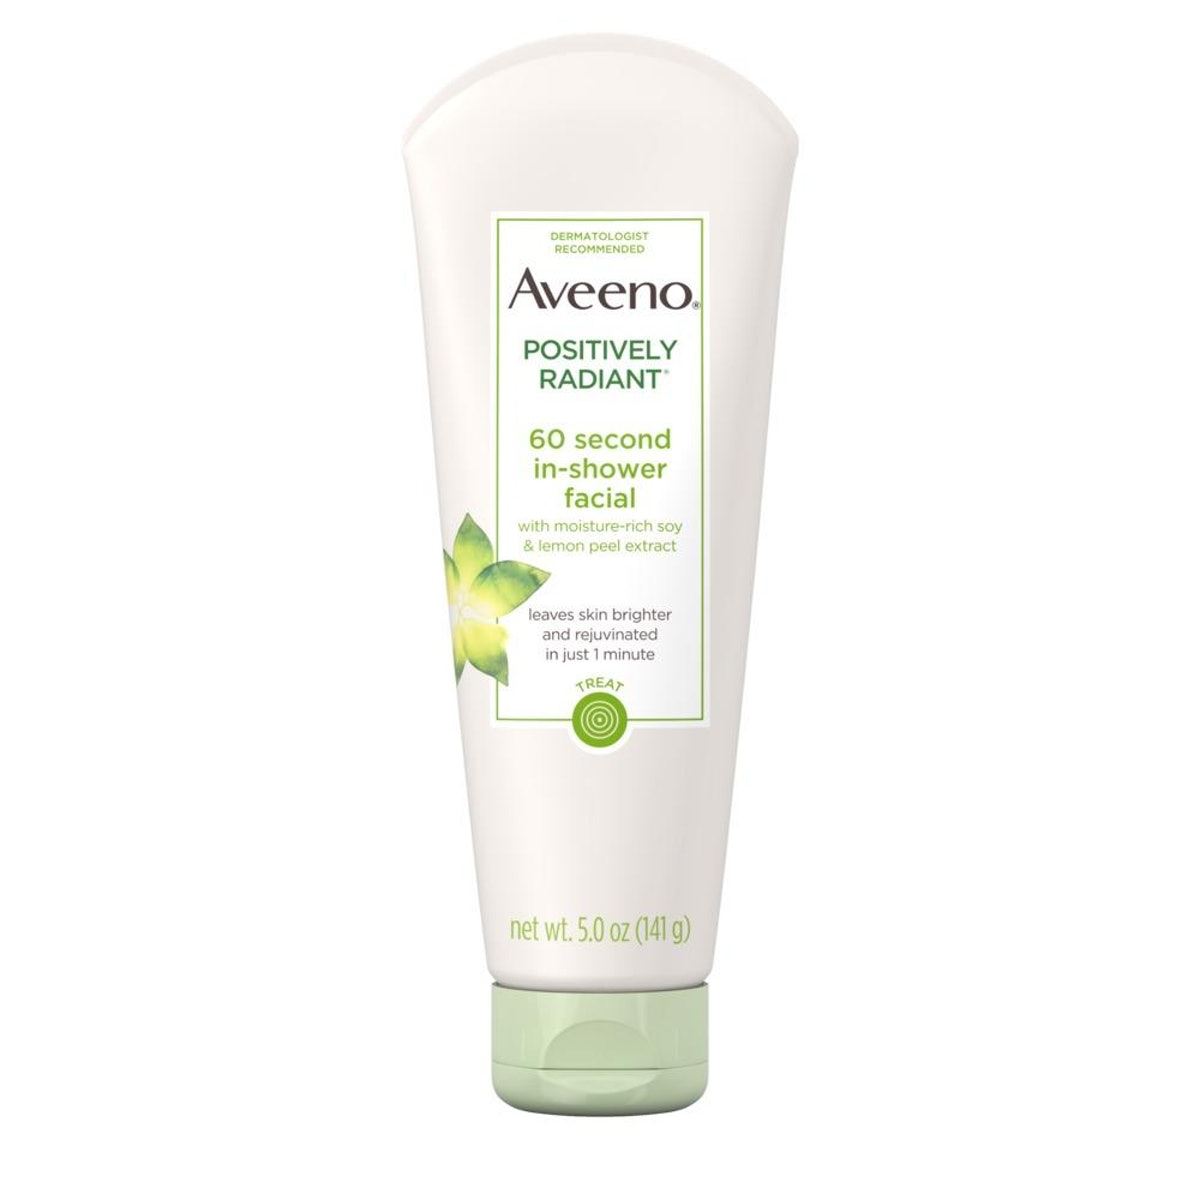 Aveeno Active Naturals Positively Radiant 60 Second In-Shower Facial